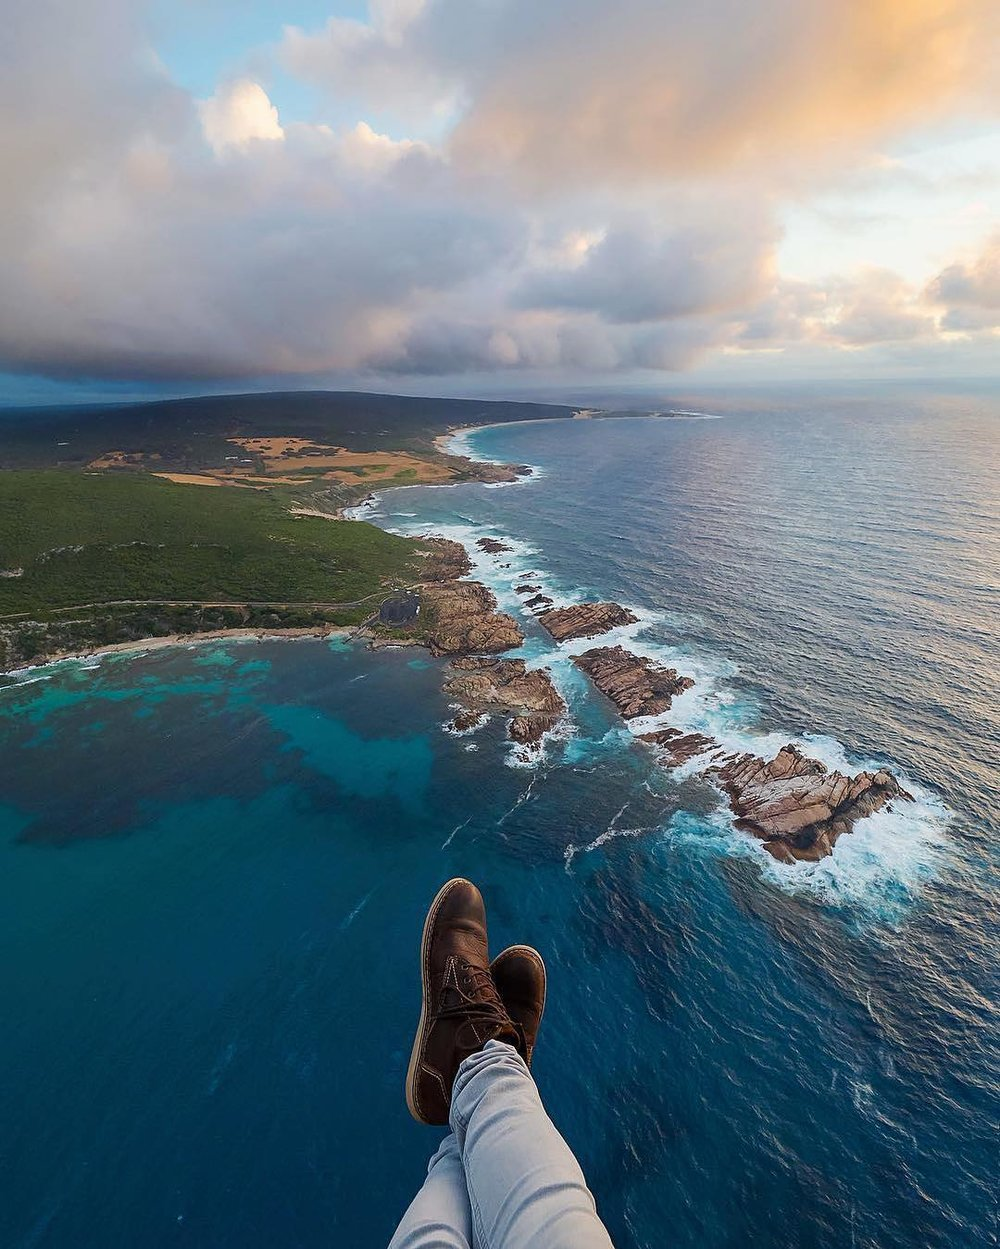 Adrenalin Hit List #5 - See the coast from your very own helicopter